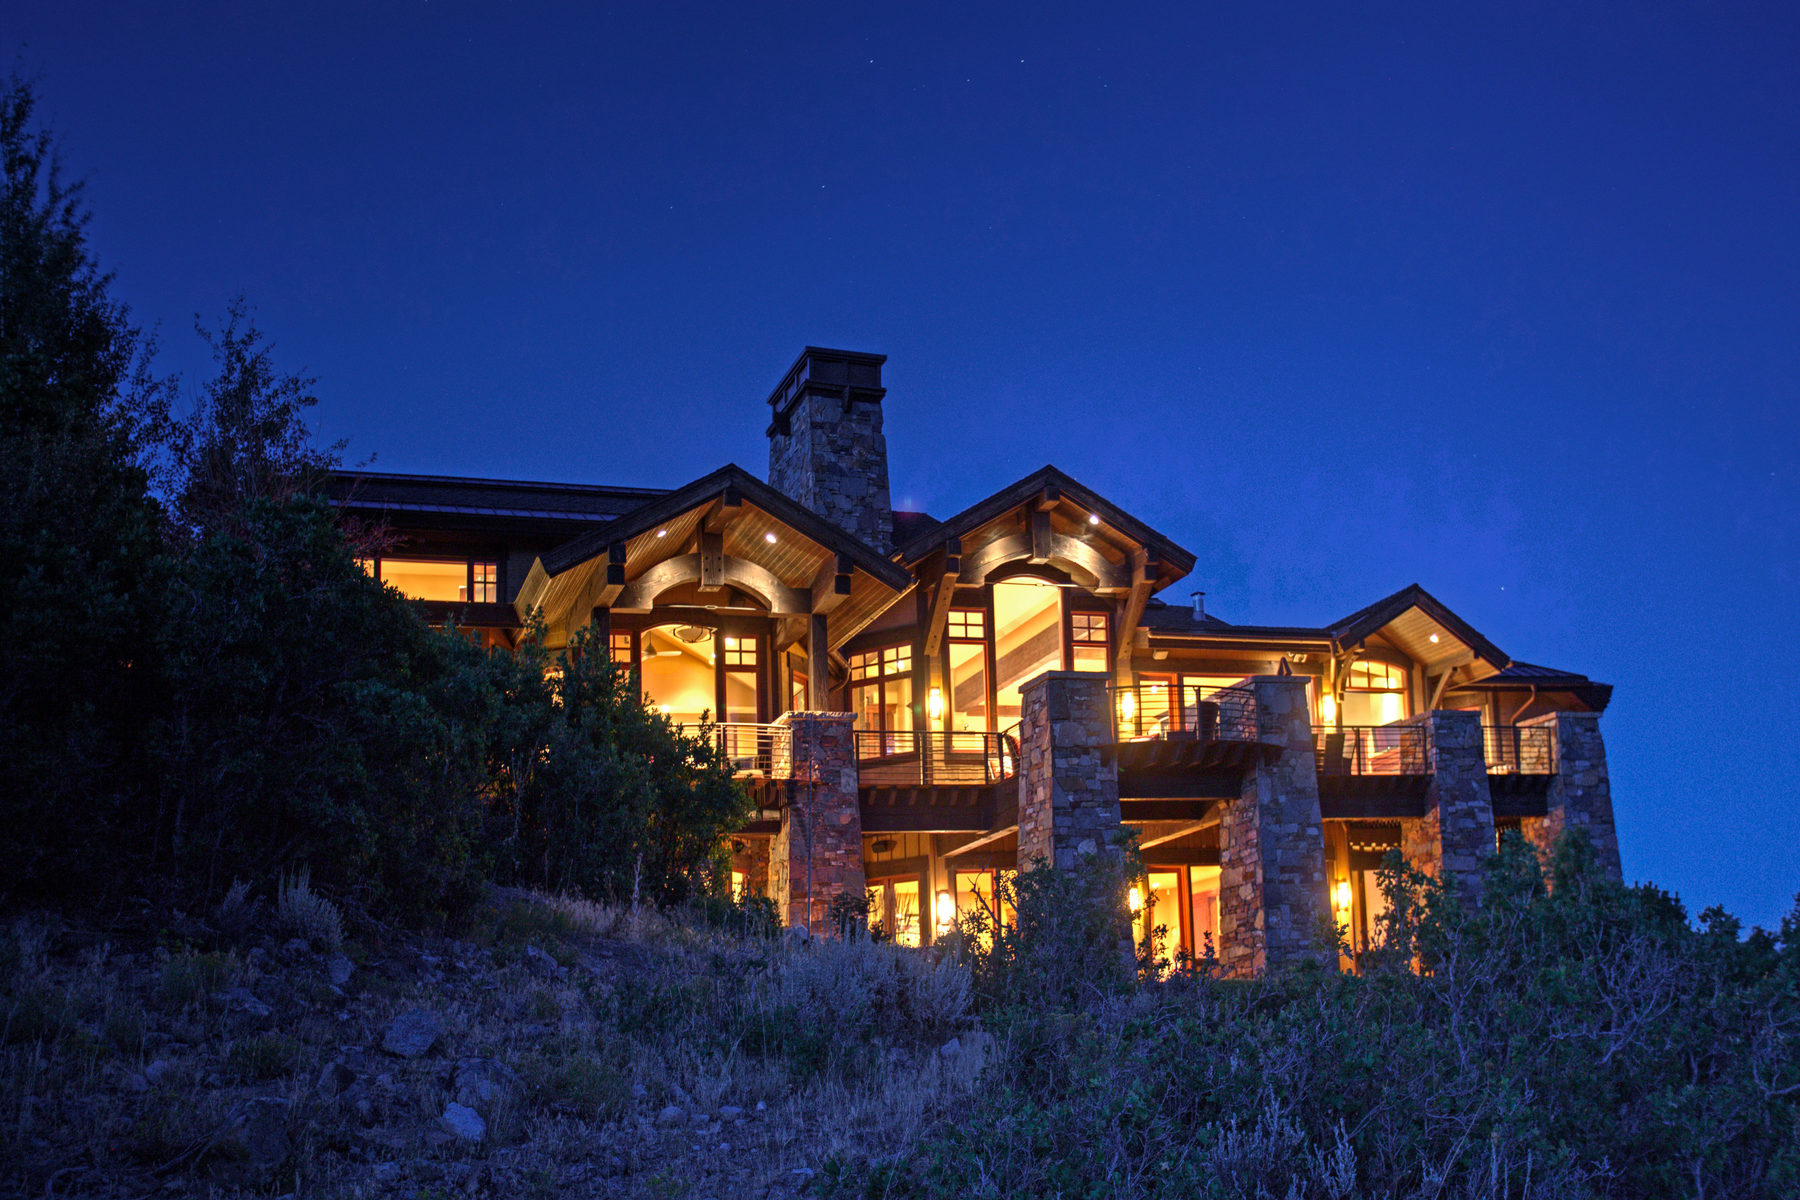 Single Family Home for Sale at Warm Mountain Contemporary Manor - Upwall Showpiece! 7982 N Sunrise Loop Park City, Utah, 84098 United States